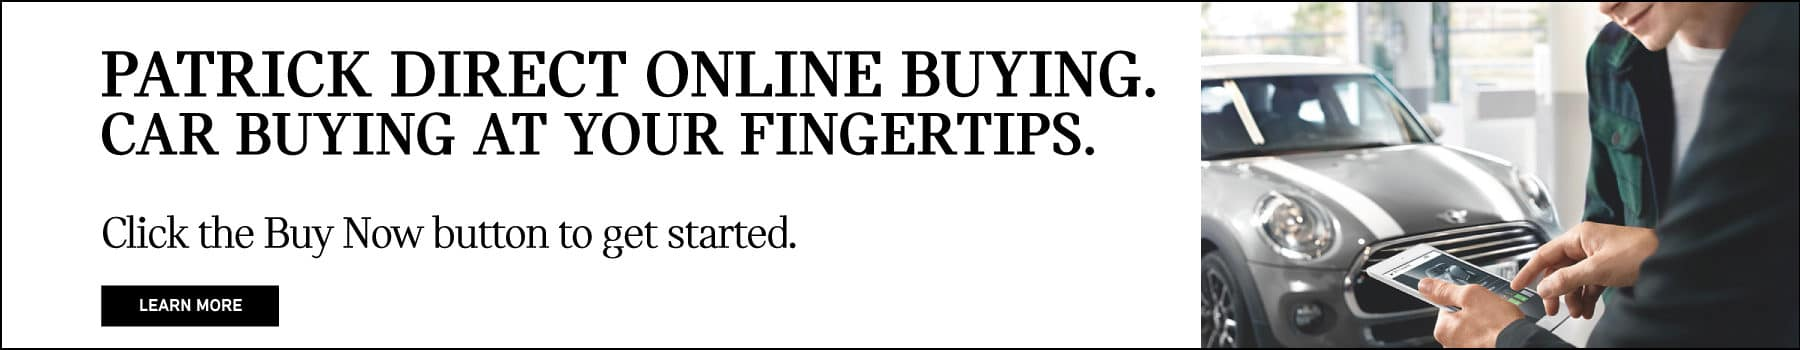 patrick direct online buying. car buying at your fingertips. click the buy now button to get started.